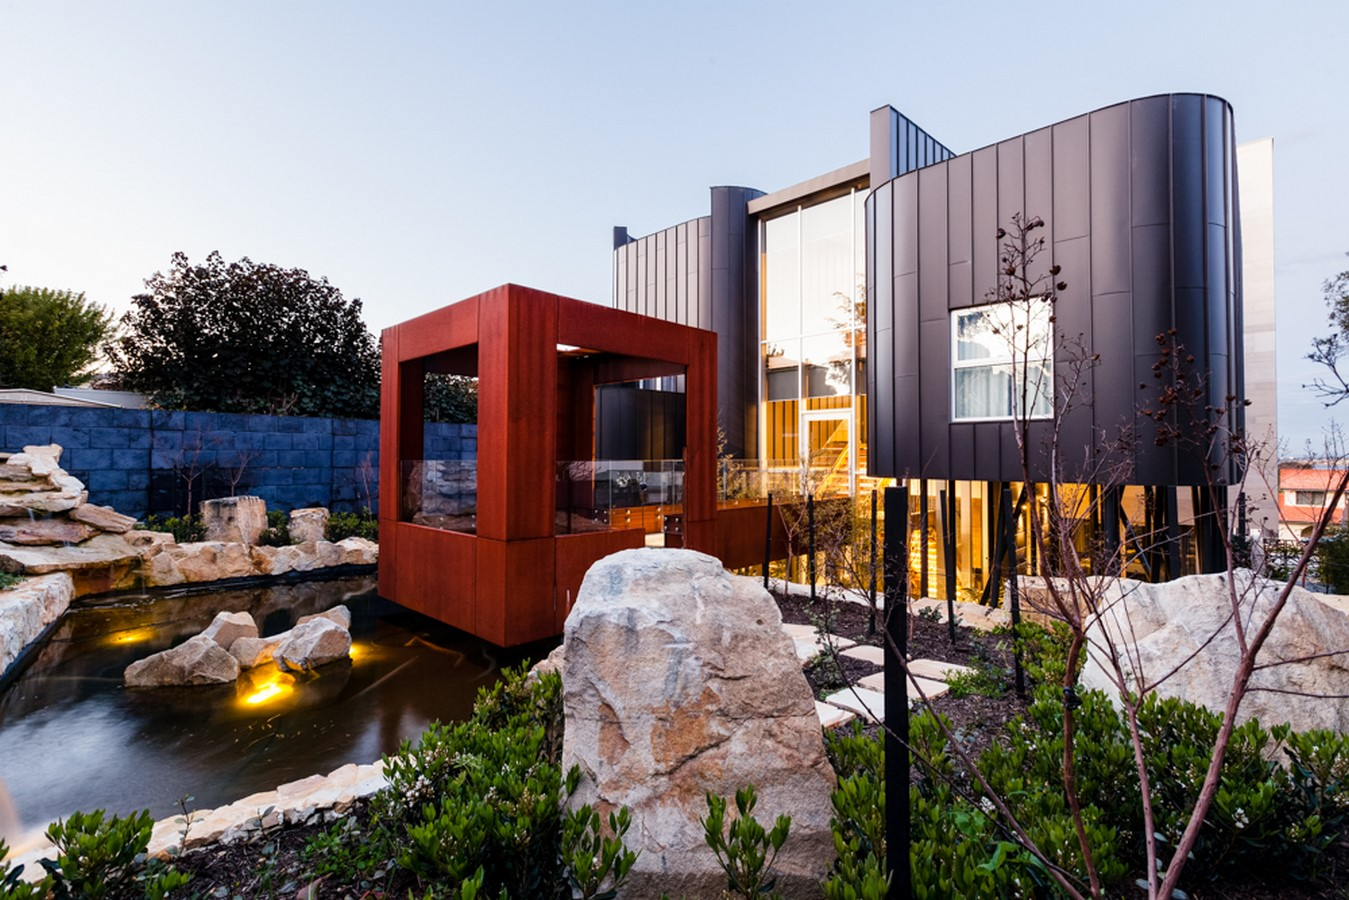 Doongalla Road Residence, Melbourne. - Sheet1